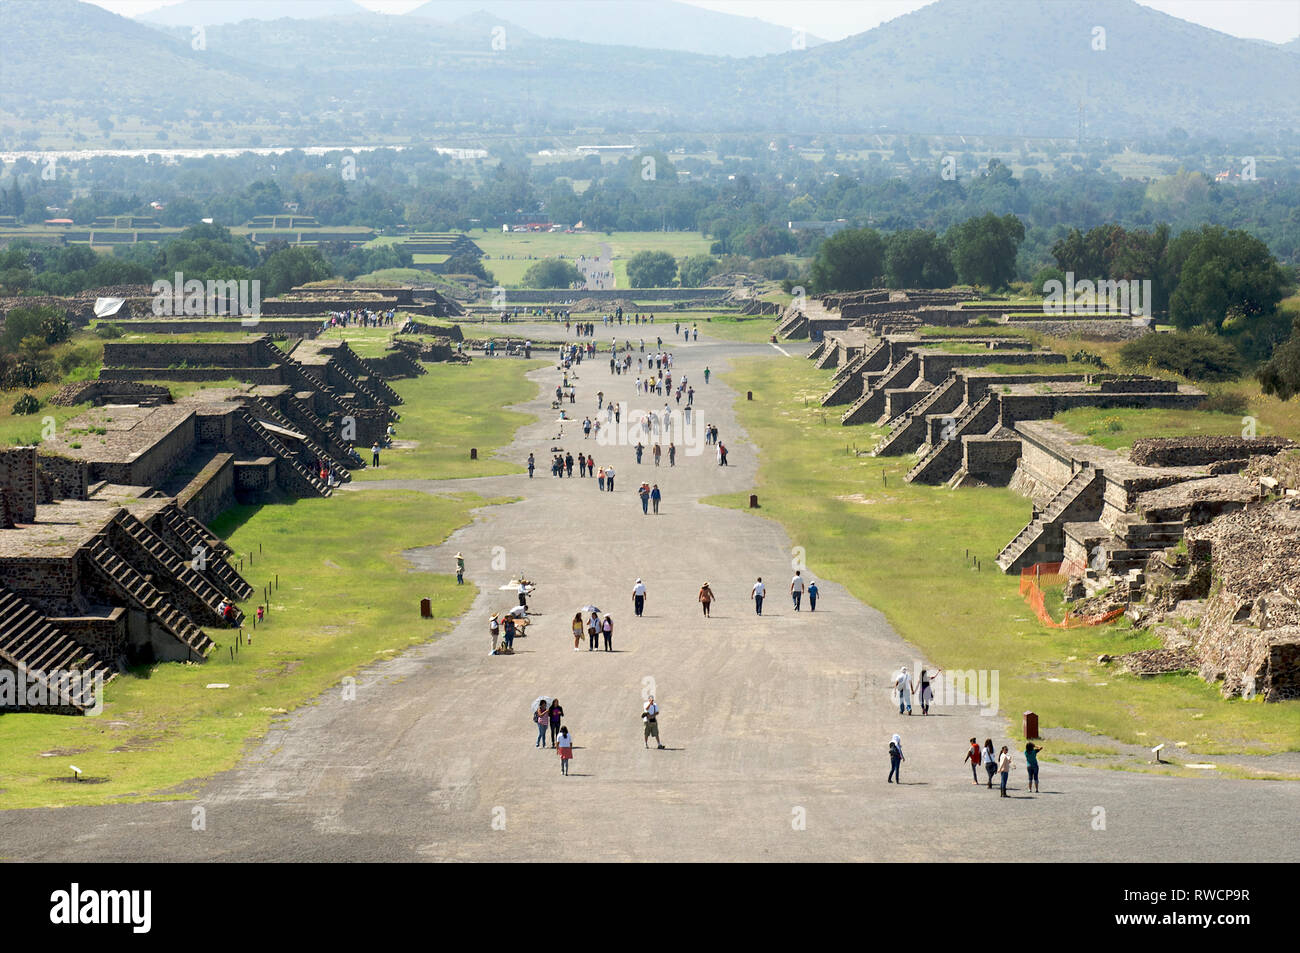 Tourists walking on the Avenue of the Dead at Teotihuacan seen from the pyramid of the Moon in Mexico - Stock Image